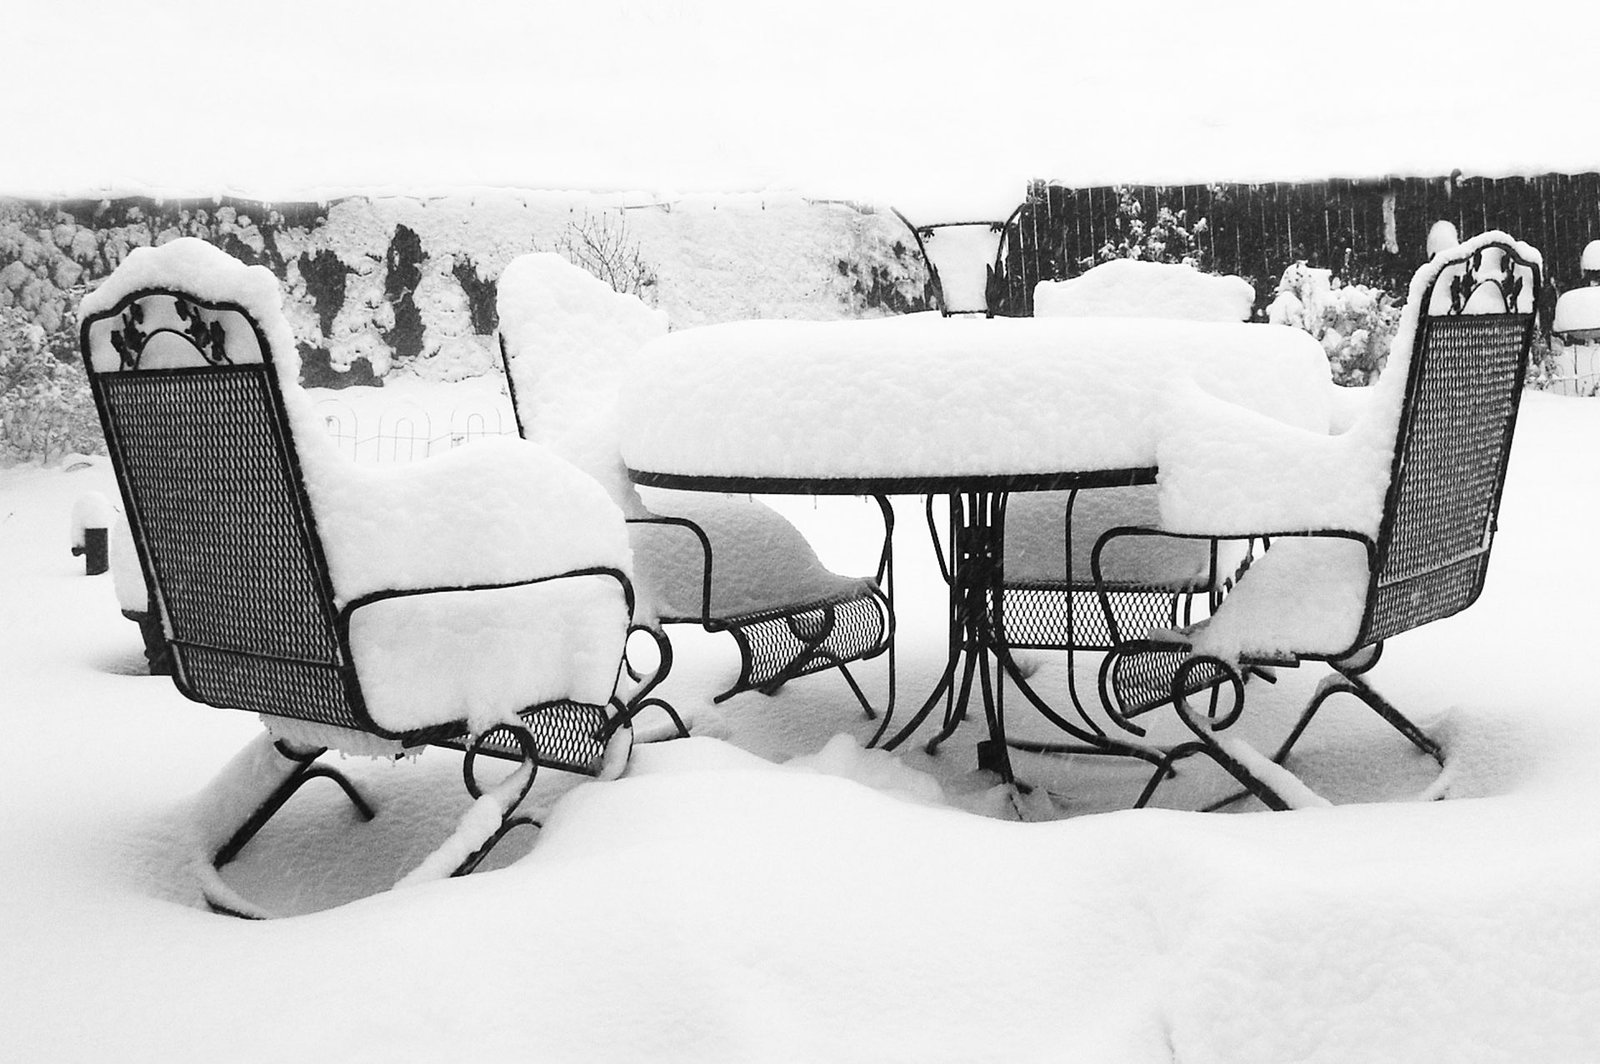 Outdoor Furniture & Equipment From Winter